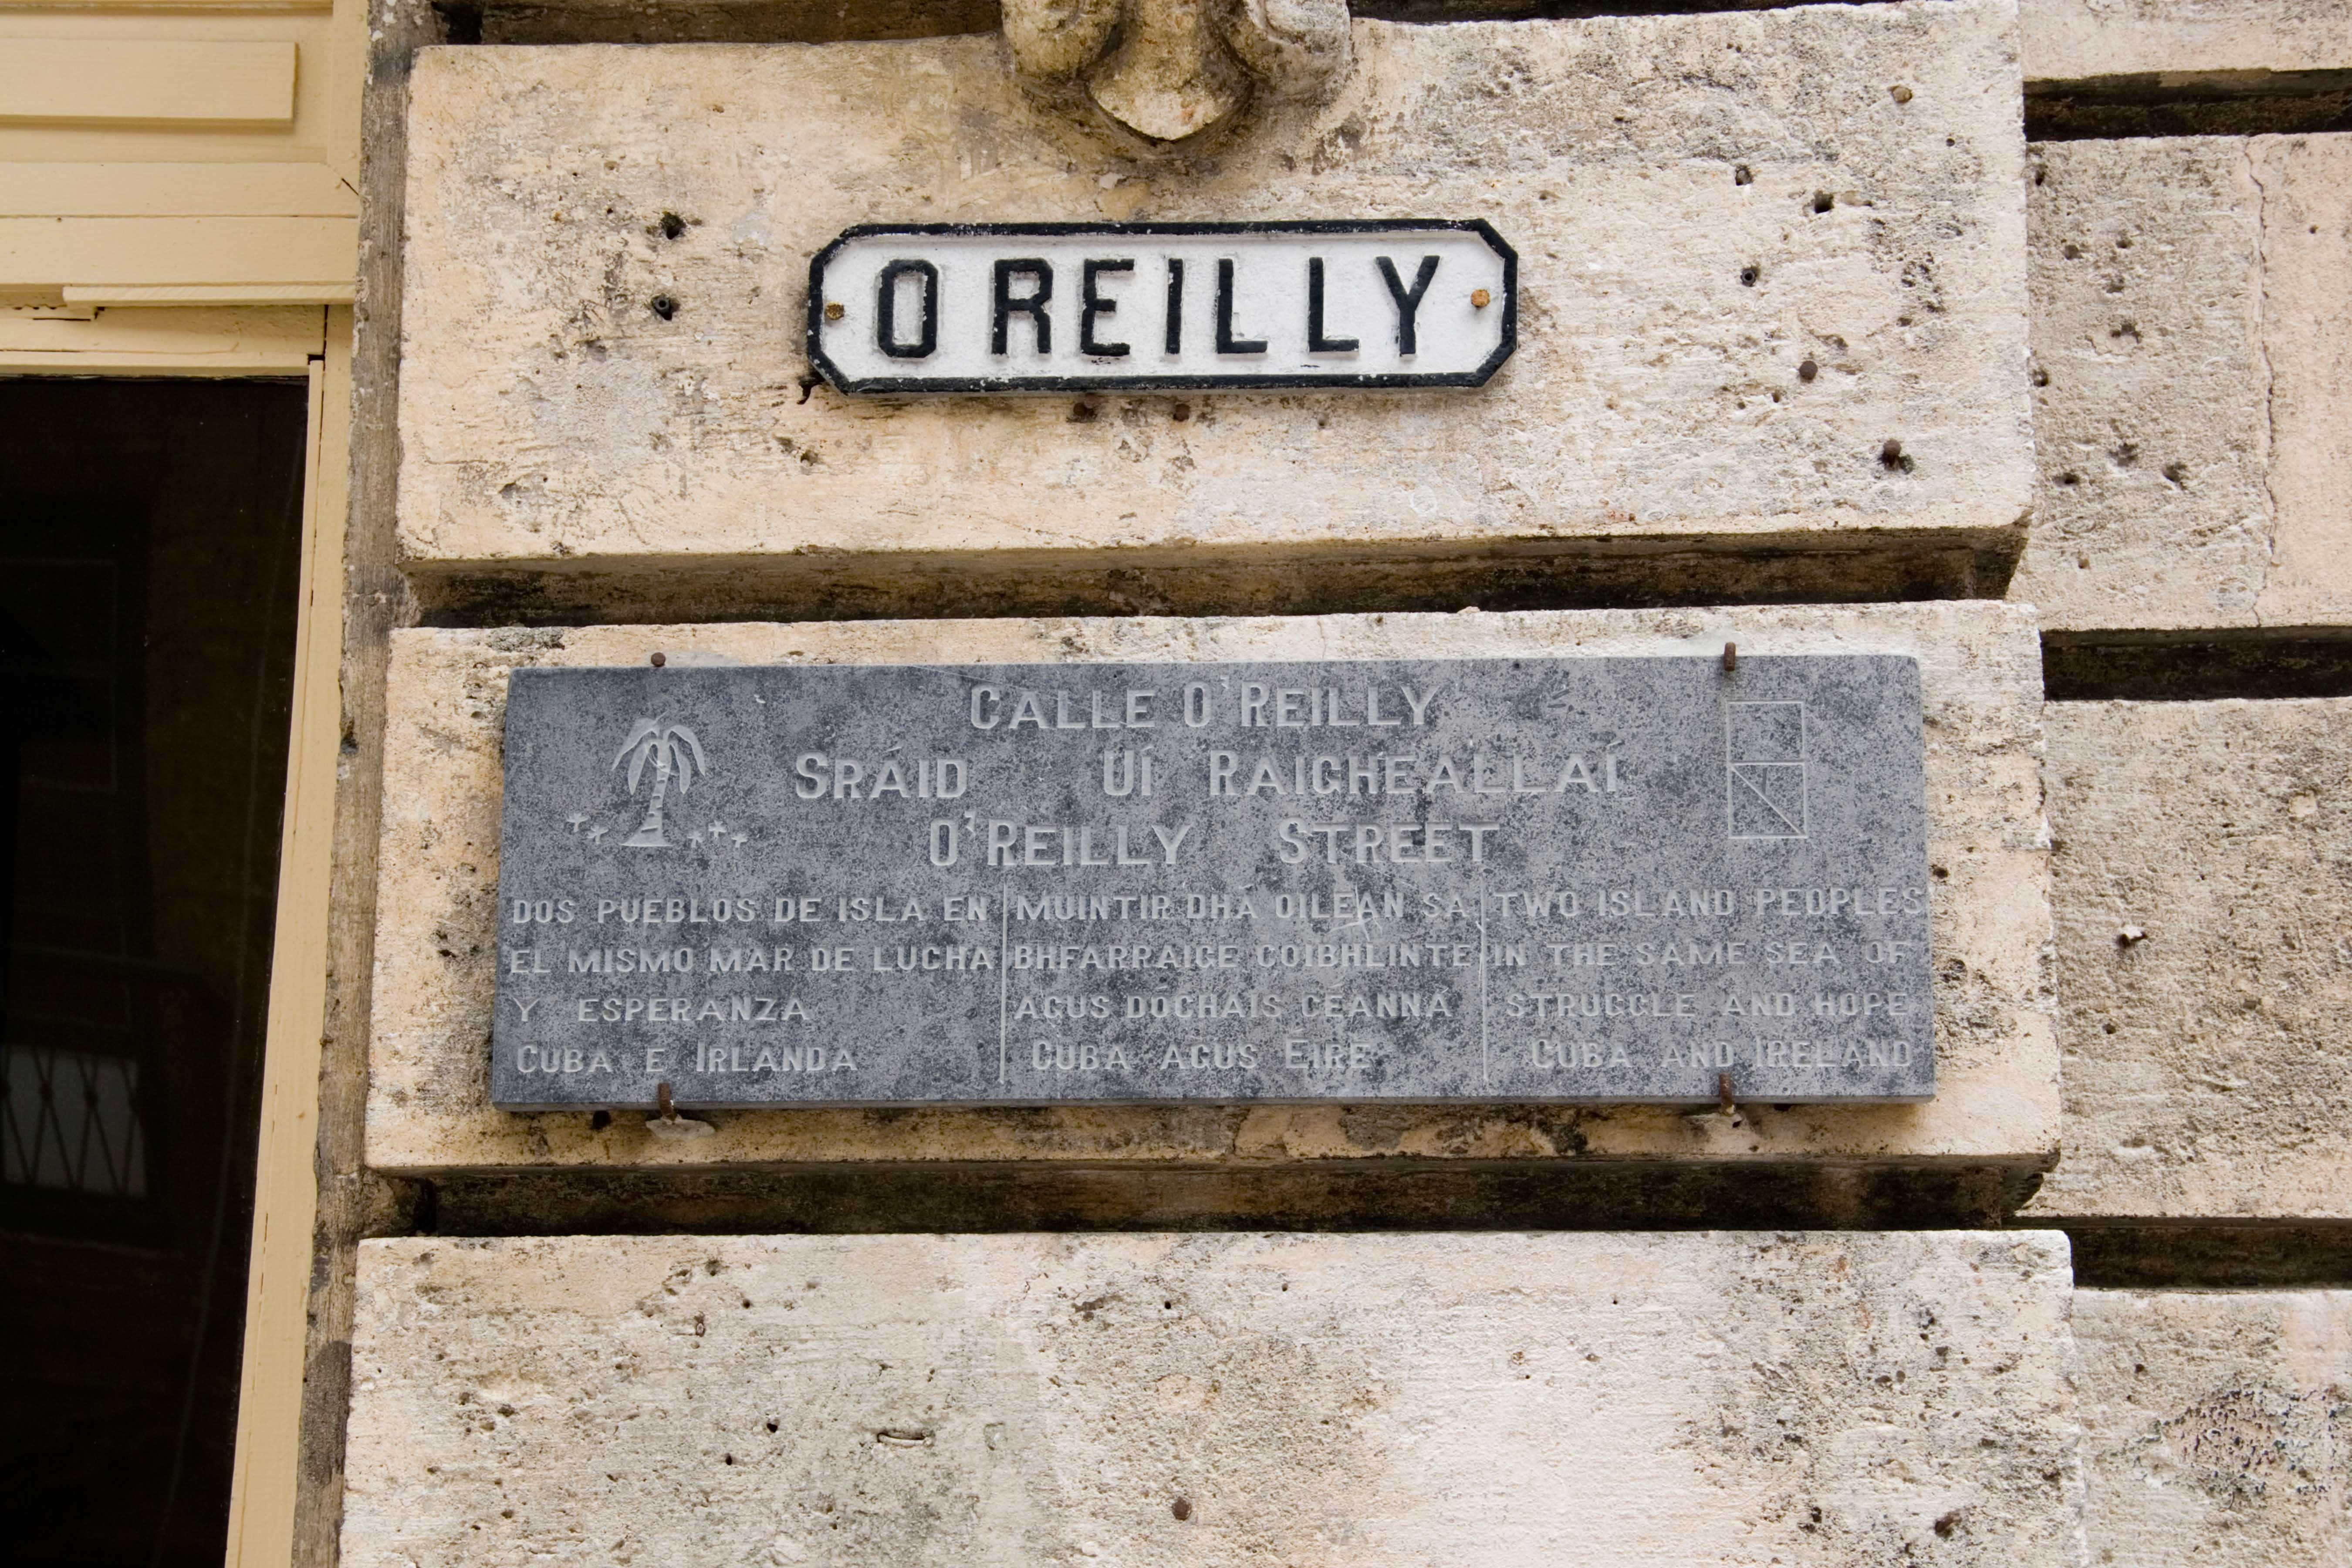 Calle O'Reilly, one of Havana's main streets. The sign, in Spanish, English, and Irish, links Cuba's struggle with Ireland's.